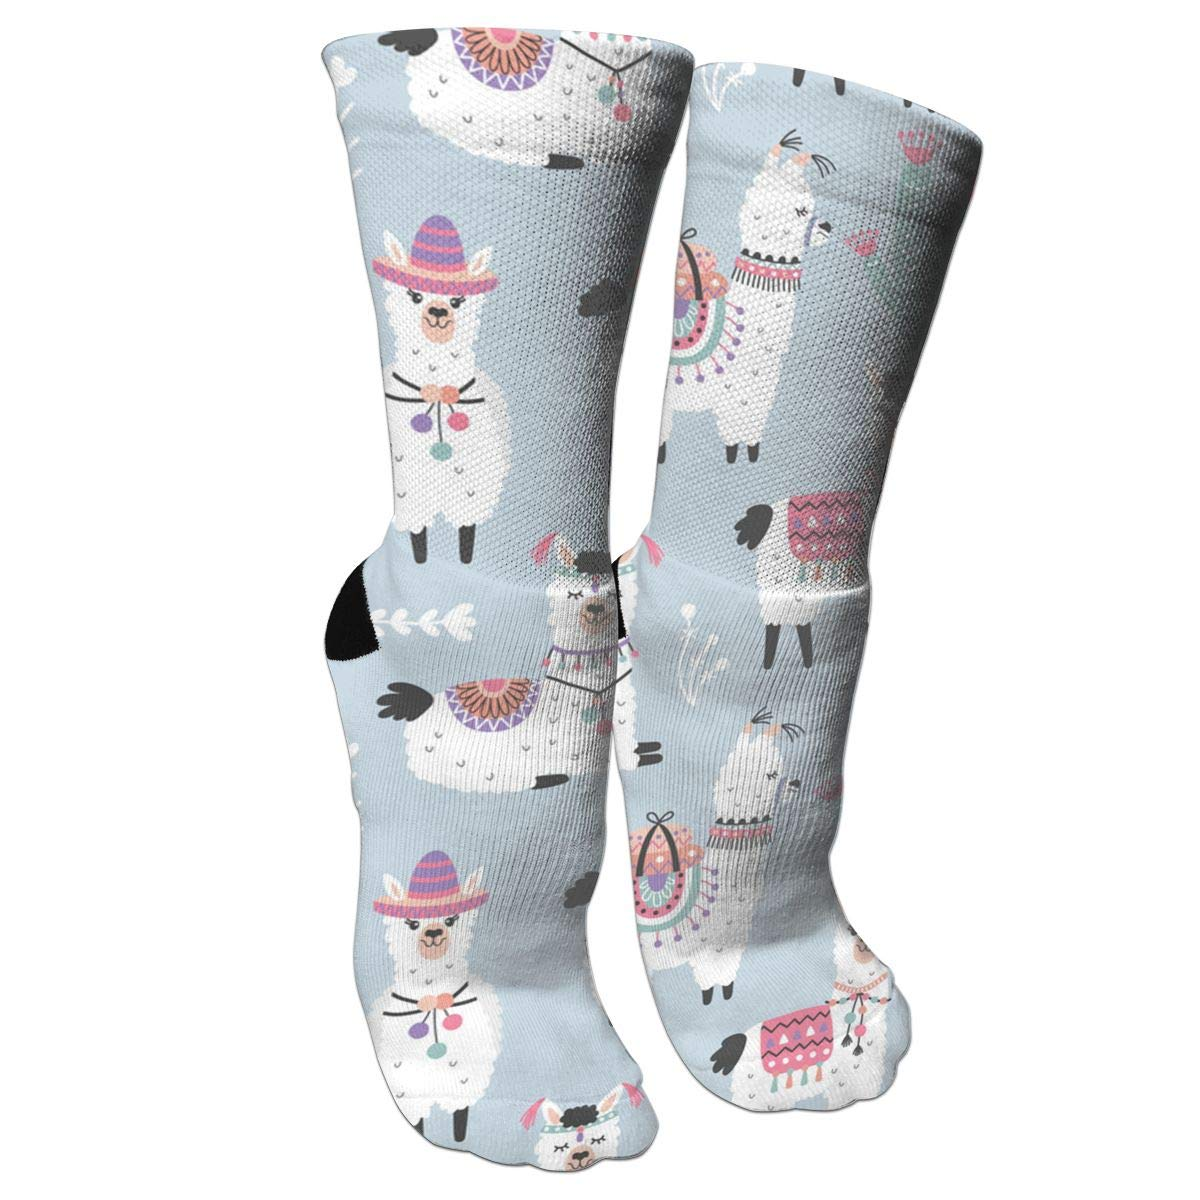 Ygsdf59 Cartoon Llama Best Medical,for Running Compression Socks for Women and Men Varicose Veins Travel Athletic 1